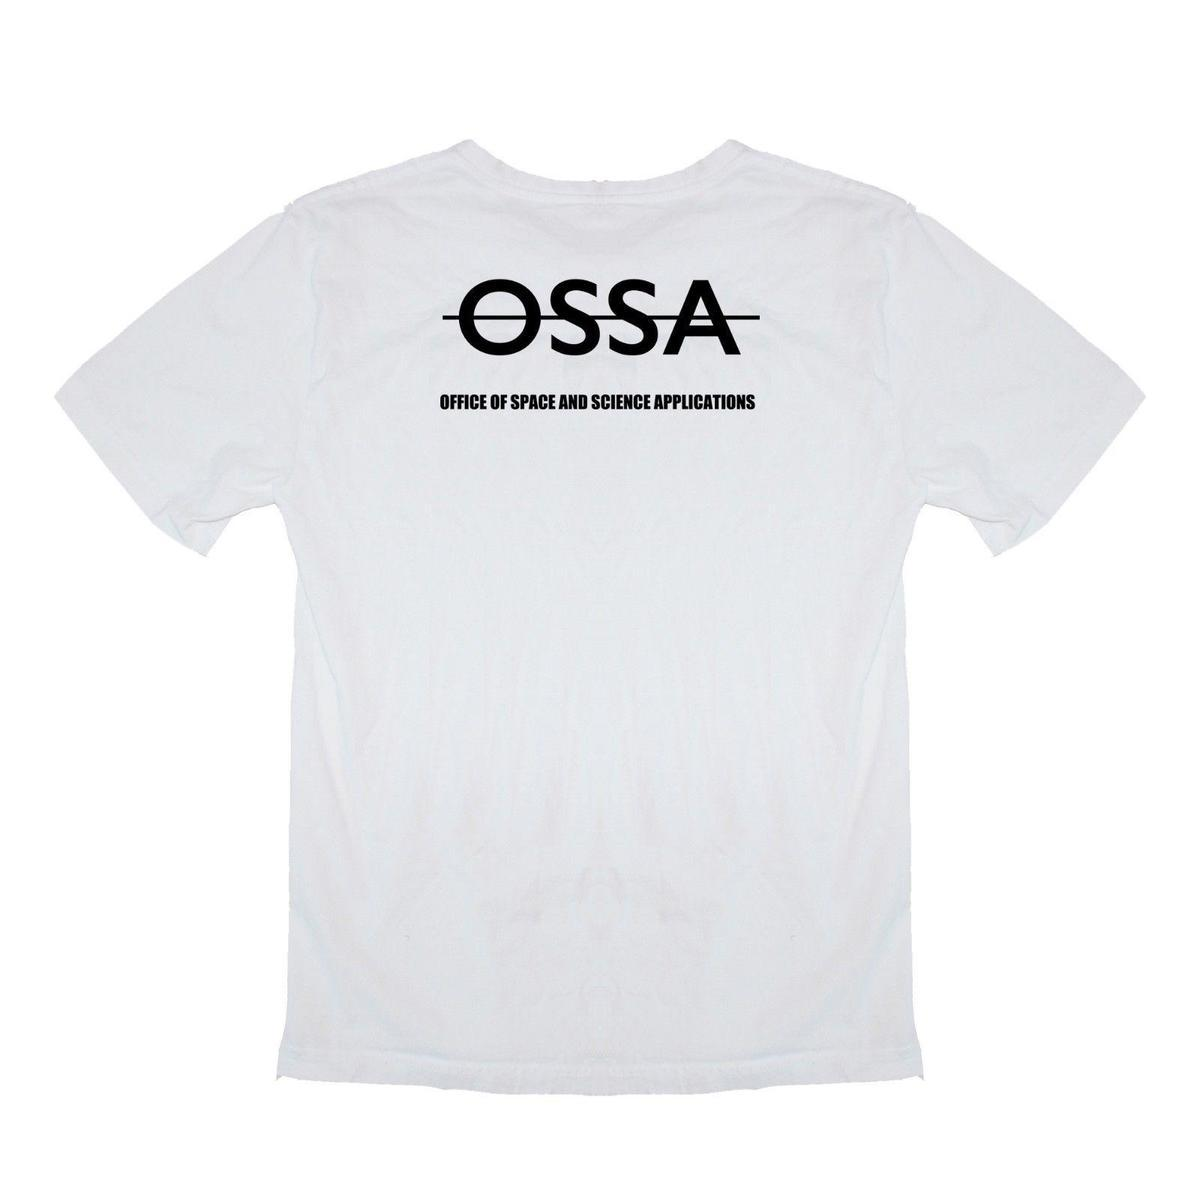 e893d6f8 OSSA Sphere Movie NASA Space Science SETI Navy Scifi Shirt S XXXL Many  Colours Funny Political T Shirts Tee Designs From Yuxin0008, $14.67|  DHgate.Com